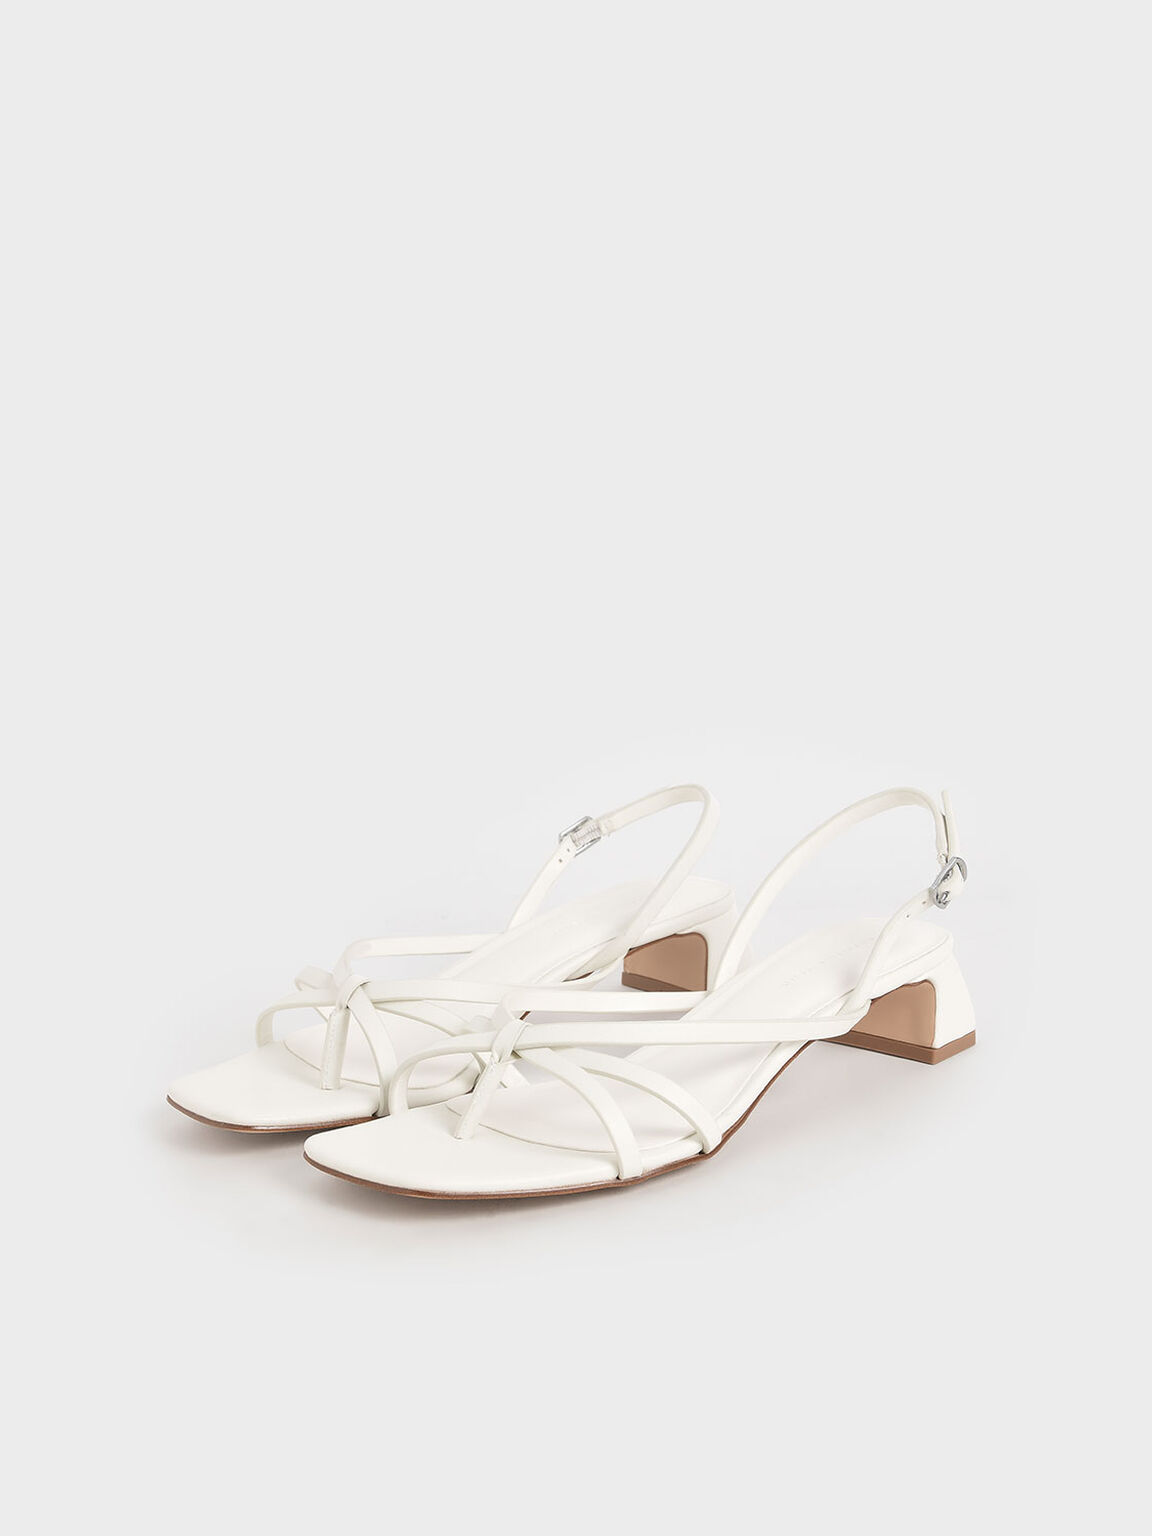 Strappy Sandals, White, hi-res